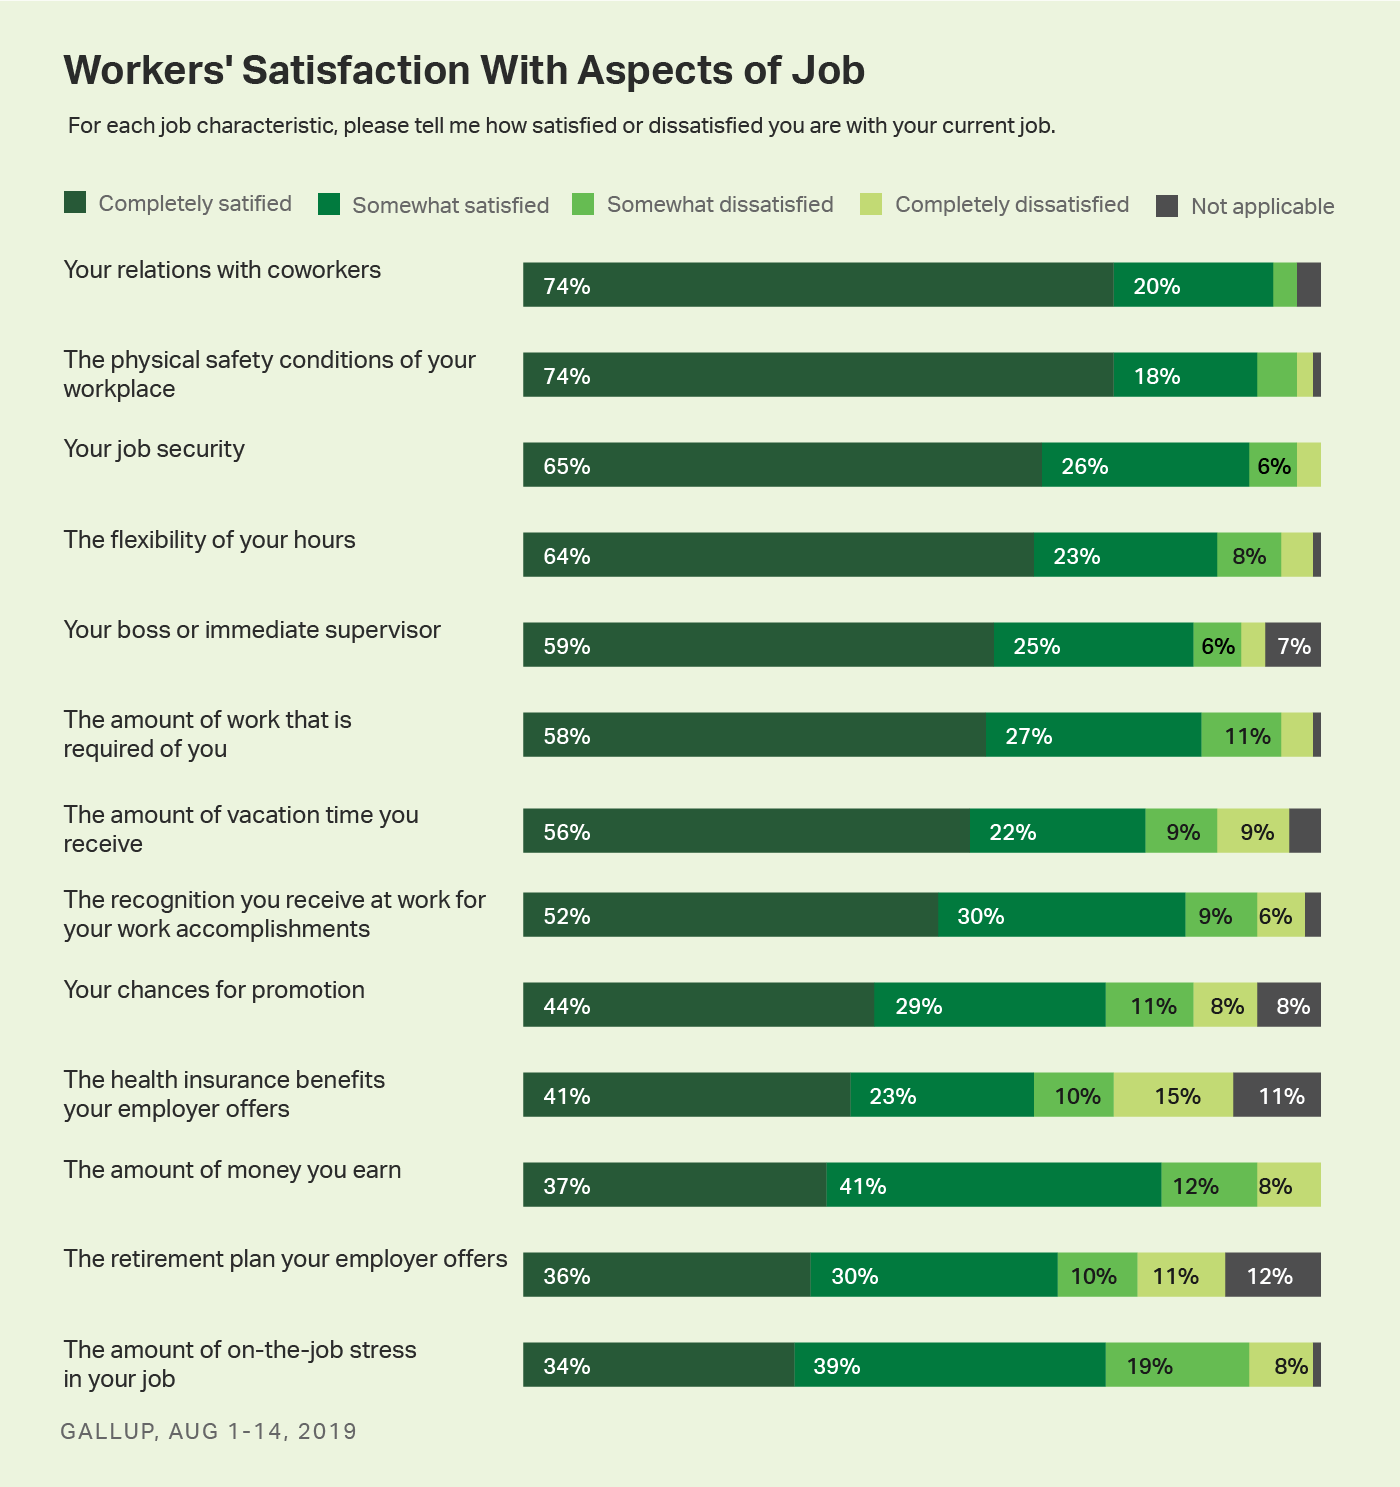 Bar chart. U.S. workers' satisfaction levels with 13 job characteristics.